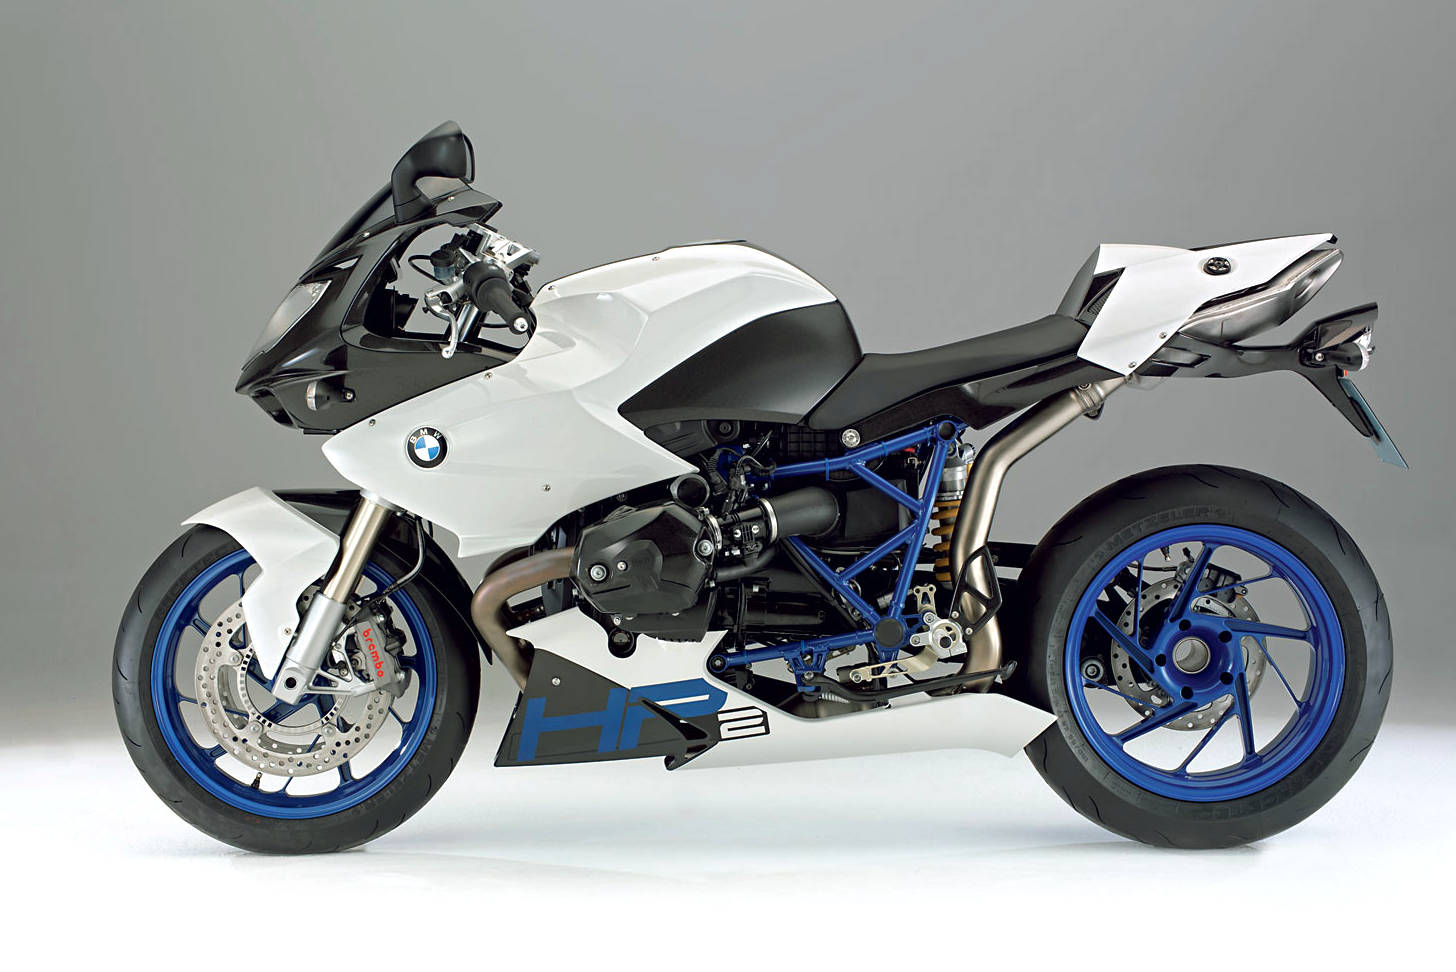 Bmw Preparing A New Boxer Sport Bike? « Motorcycledaily